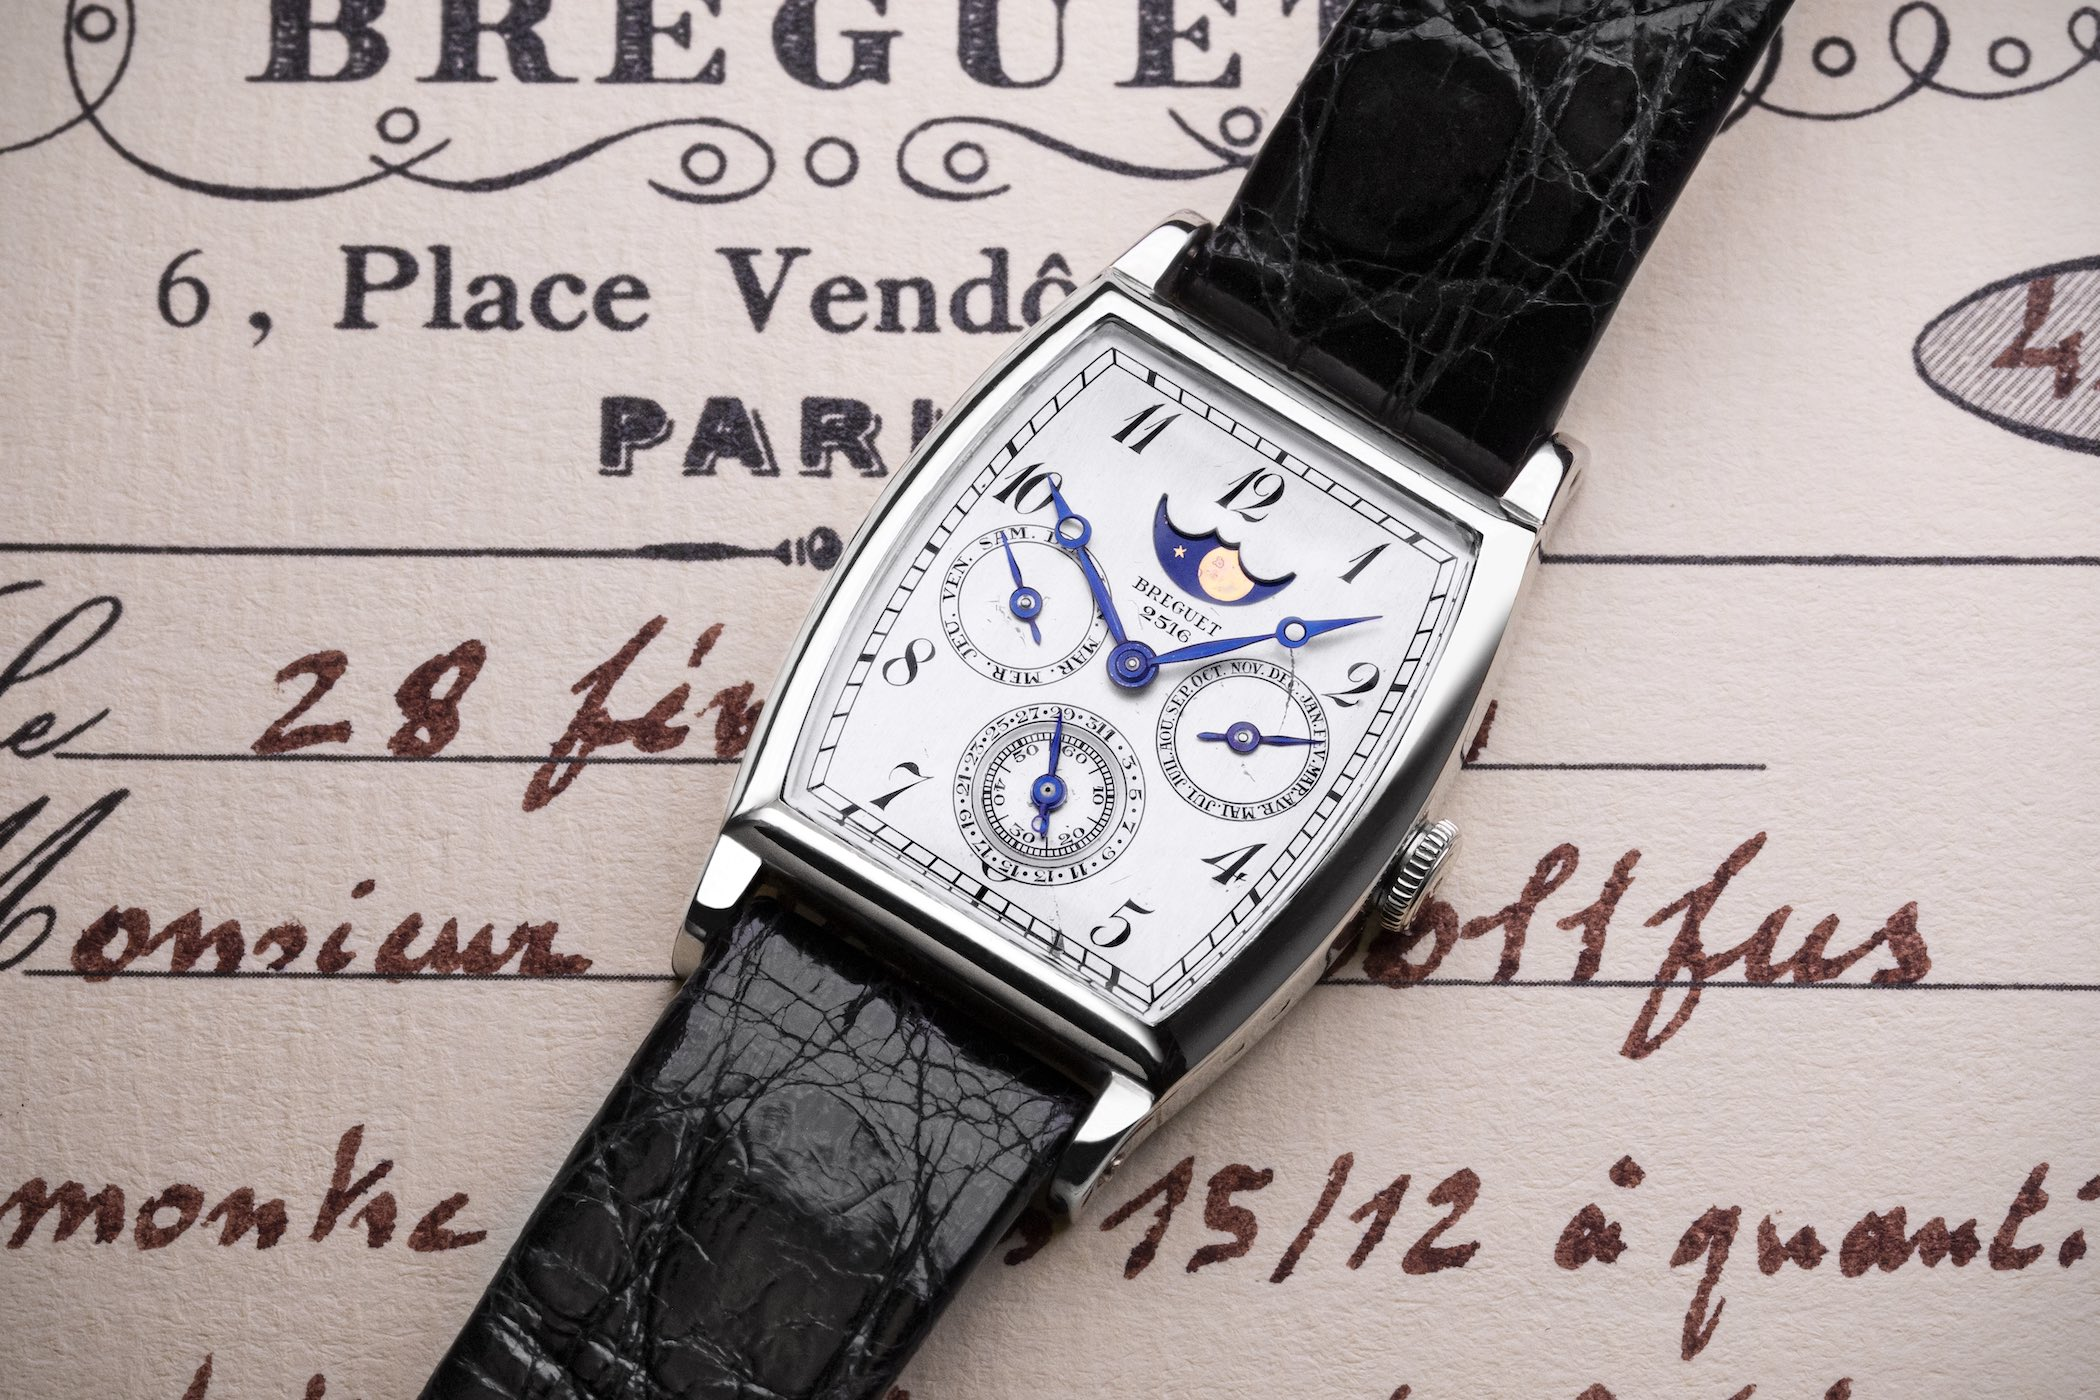 Breguet 2516 Possibly First Purpose-Built Perpetual Calendar Wristwatch